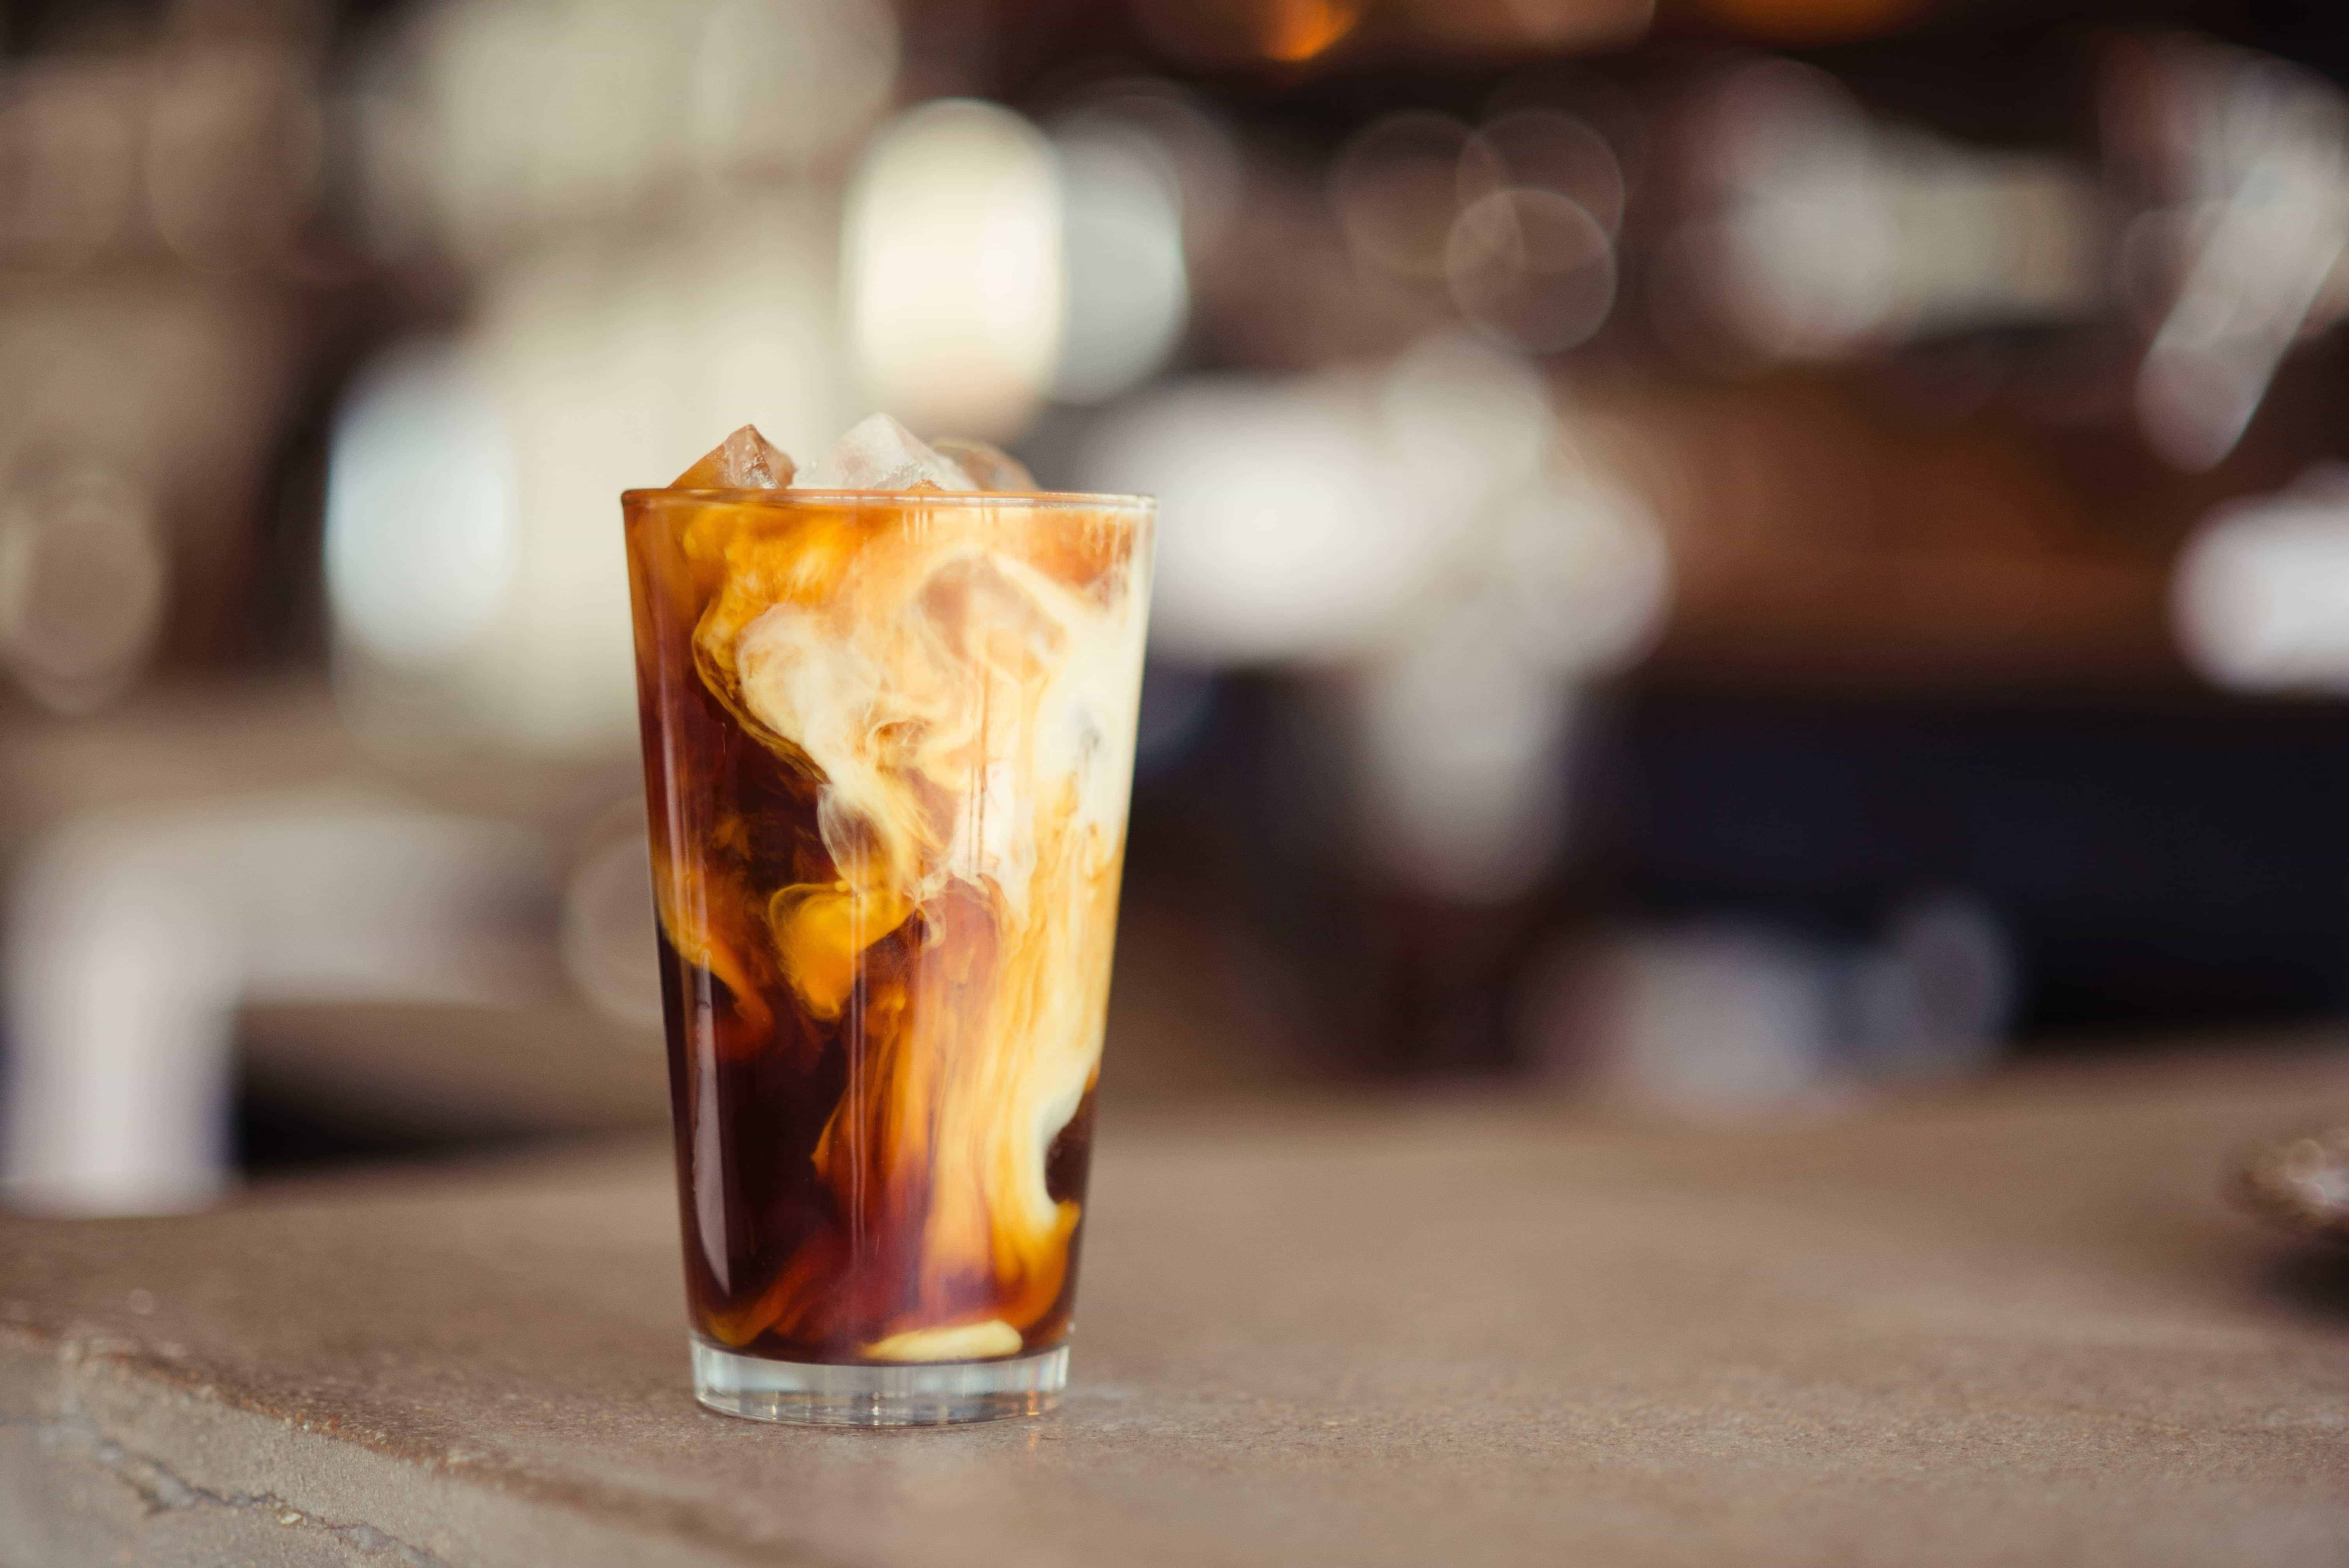 floral-infused iced coffee recipe!